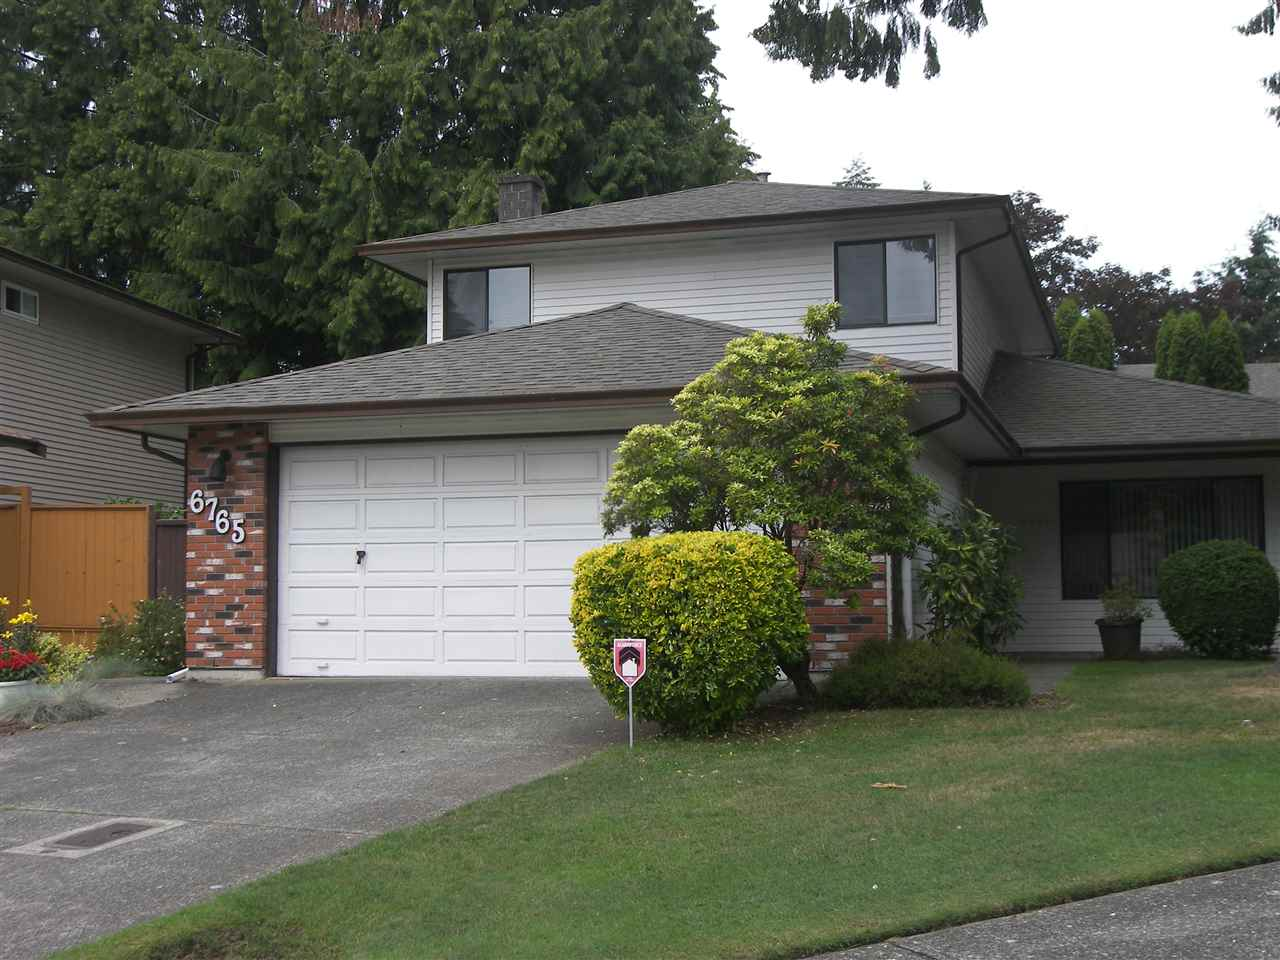 Main Photo: 6765 129TH Street in Surrey: West Newton House for sale : MLS® # R2082590